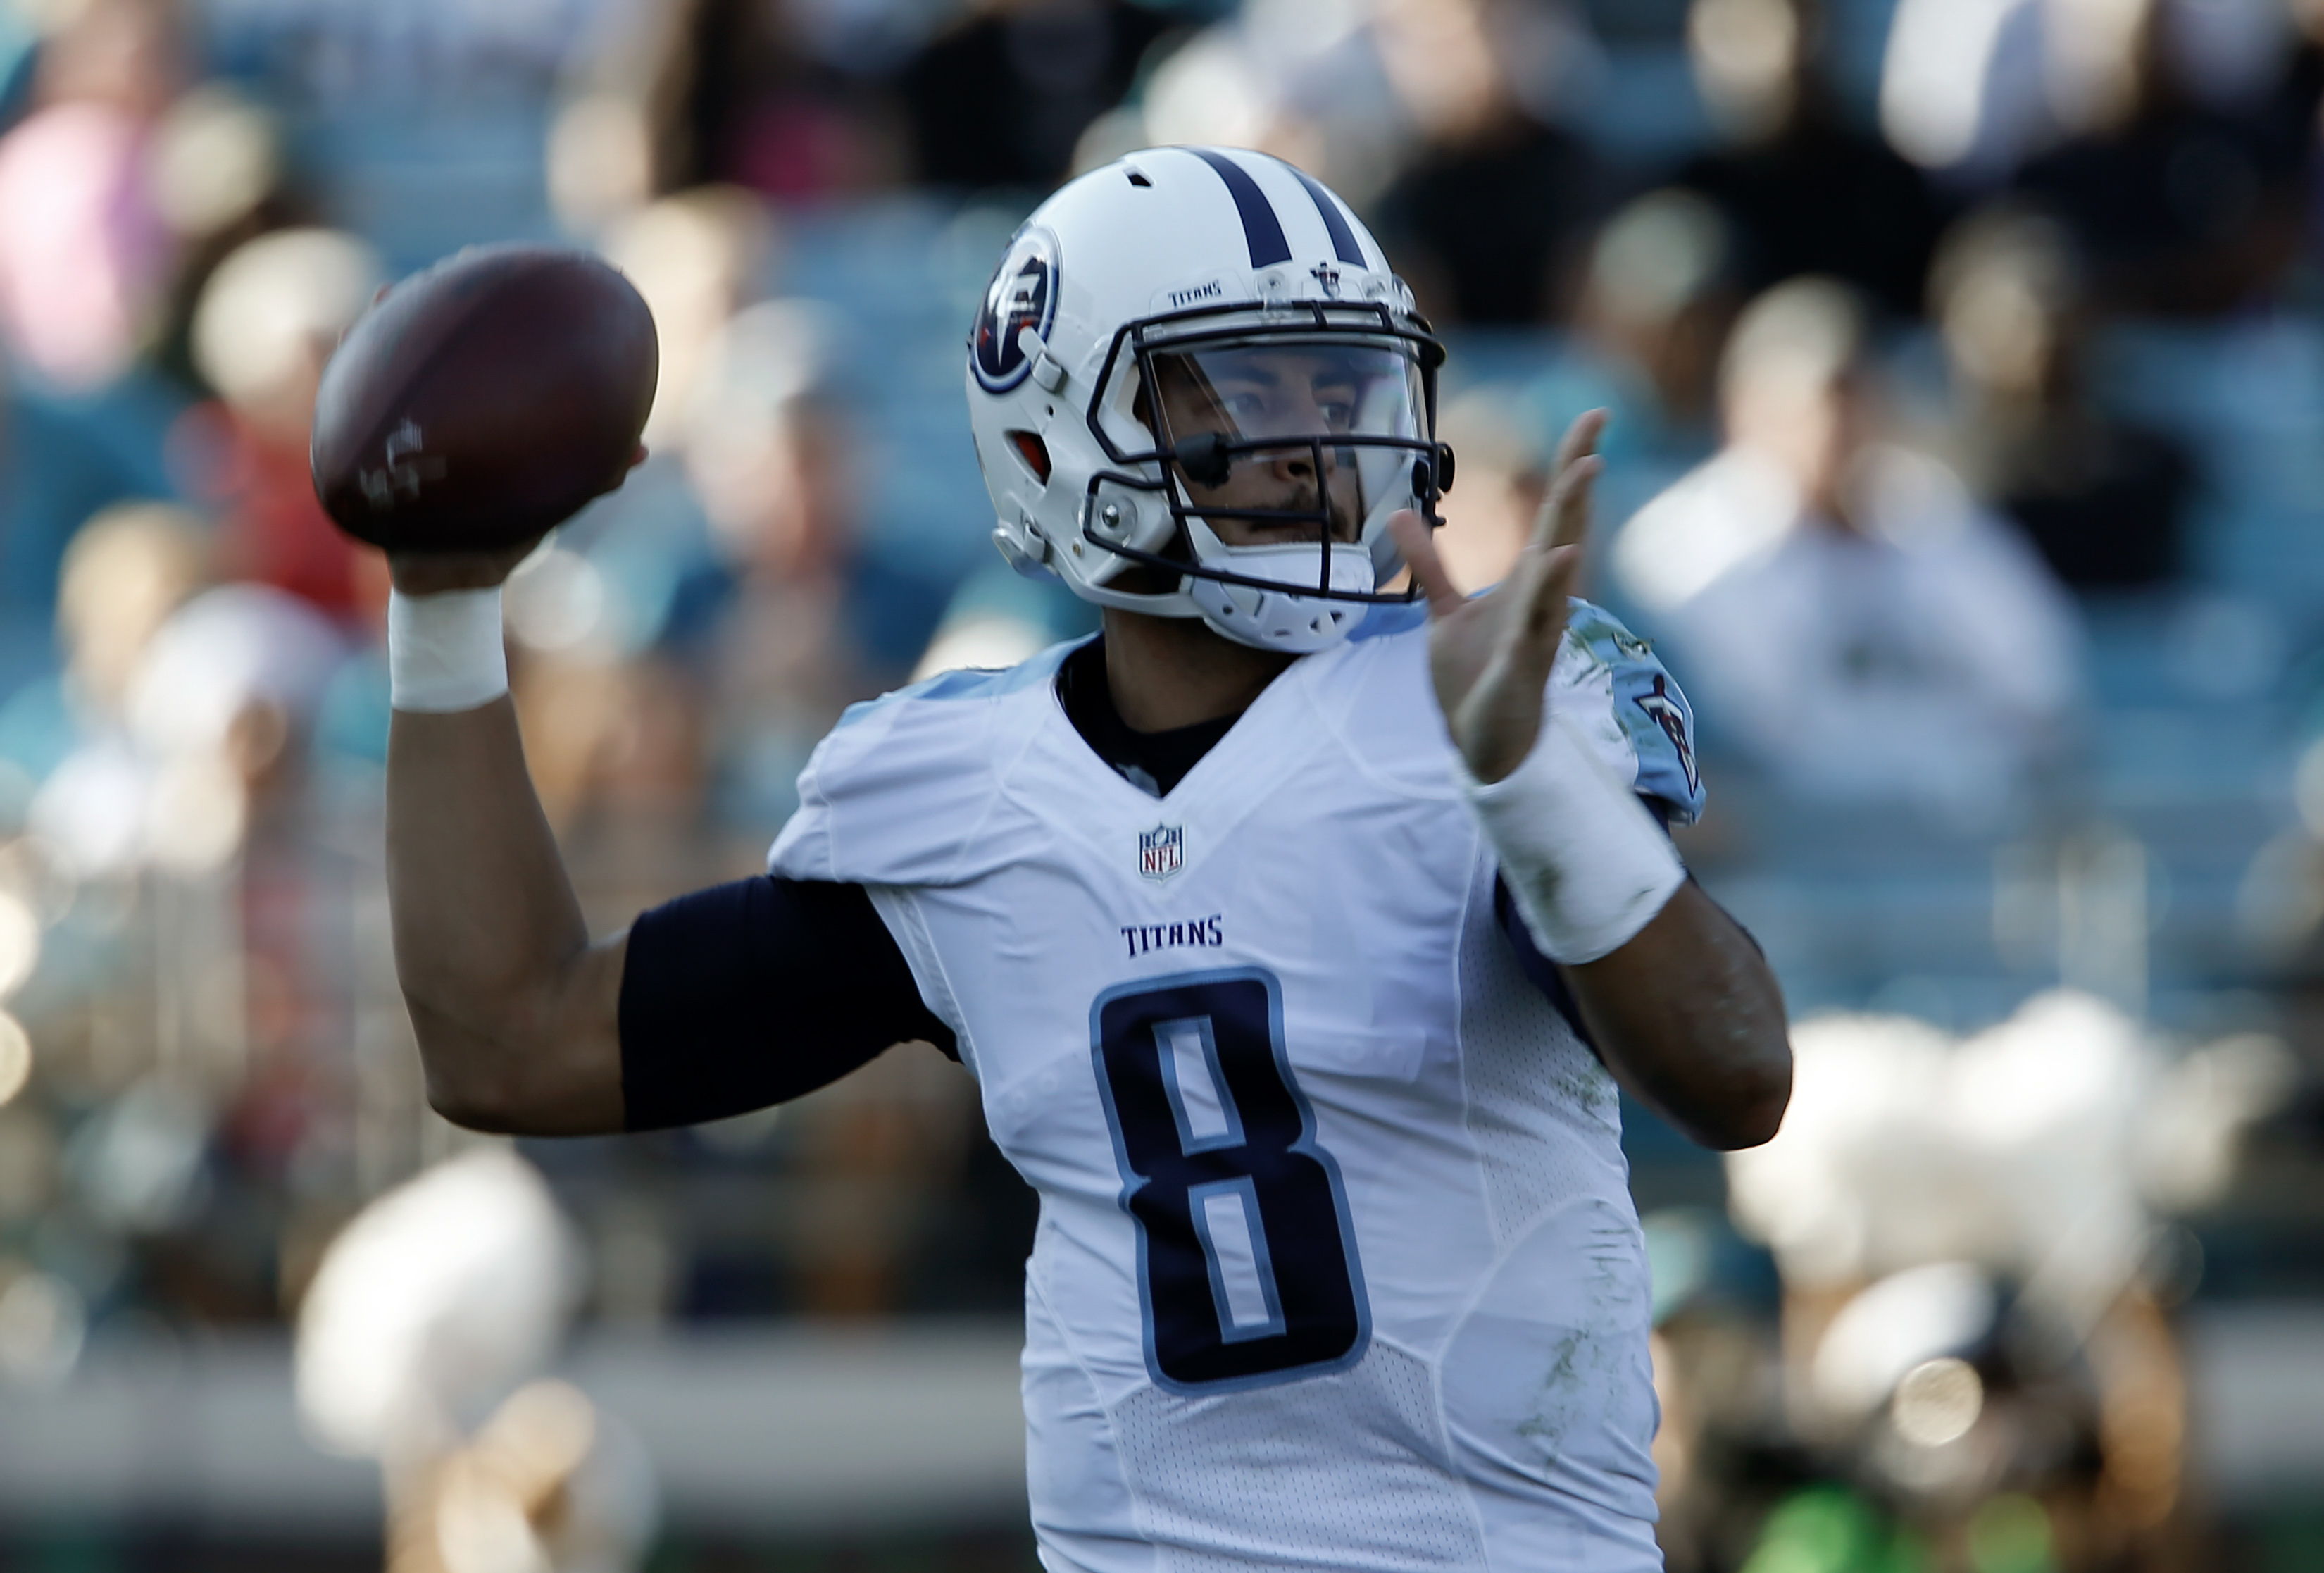 Dec 24 2016 Jacksonville FL USA Tennessee Titans Quarterback Marcus Mariota 8 Throws A Pass During The Third Quarter Of An NFL Football Game Against